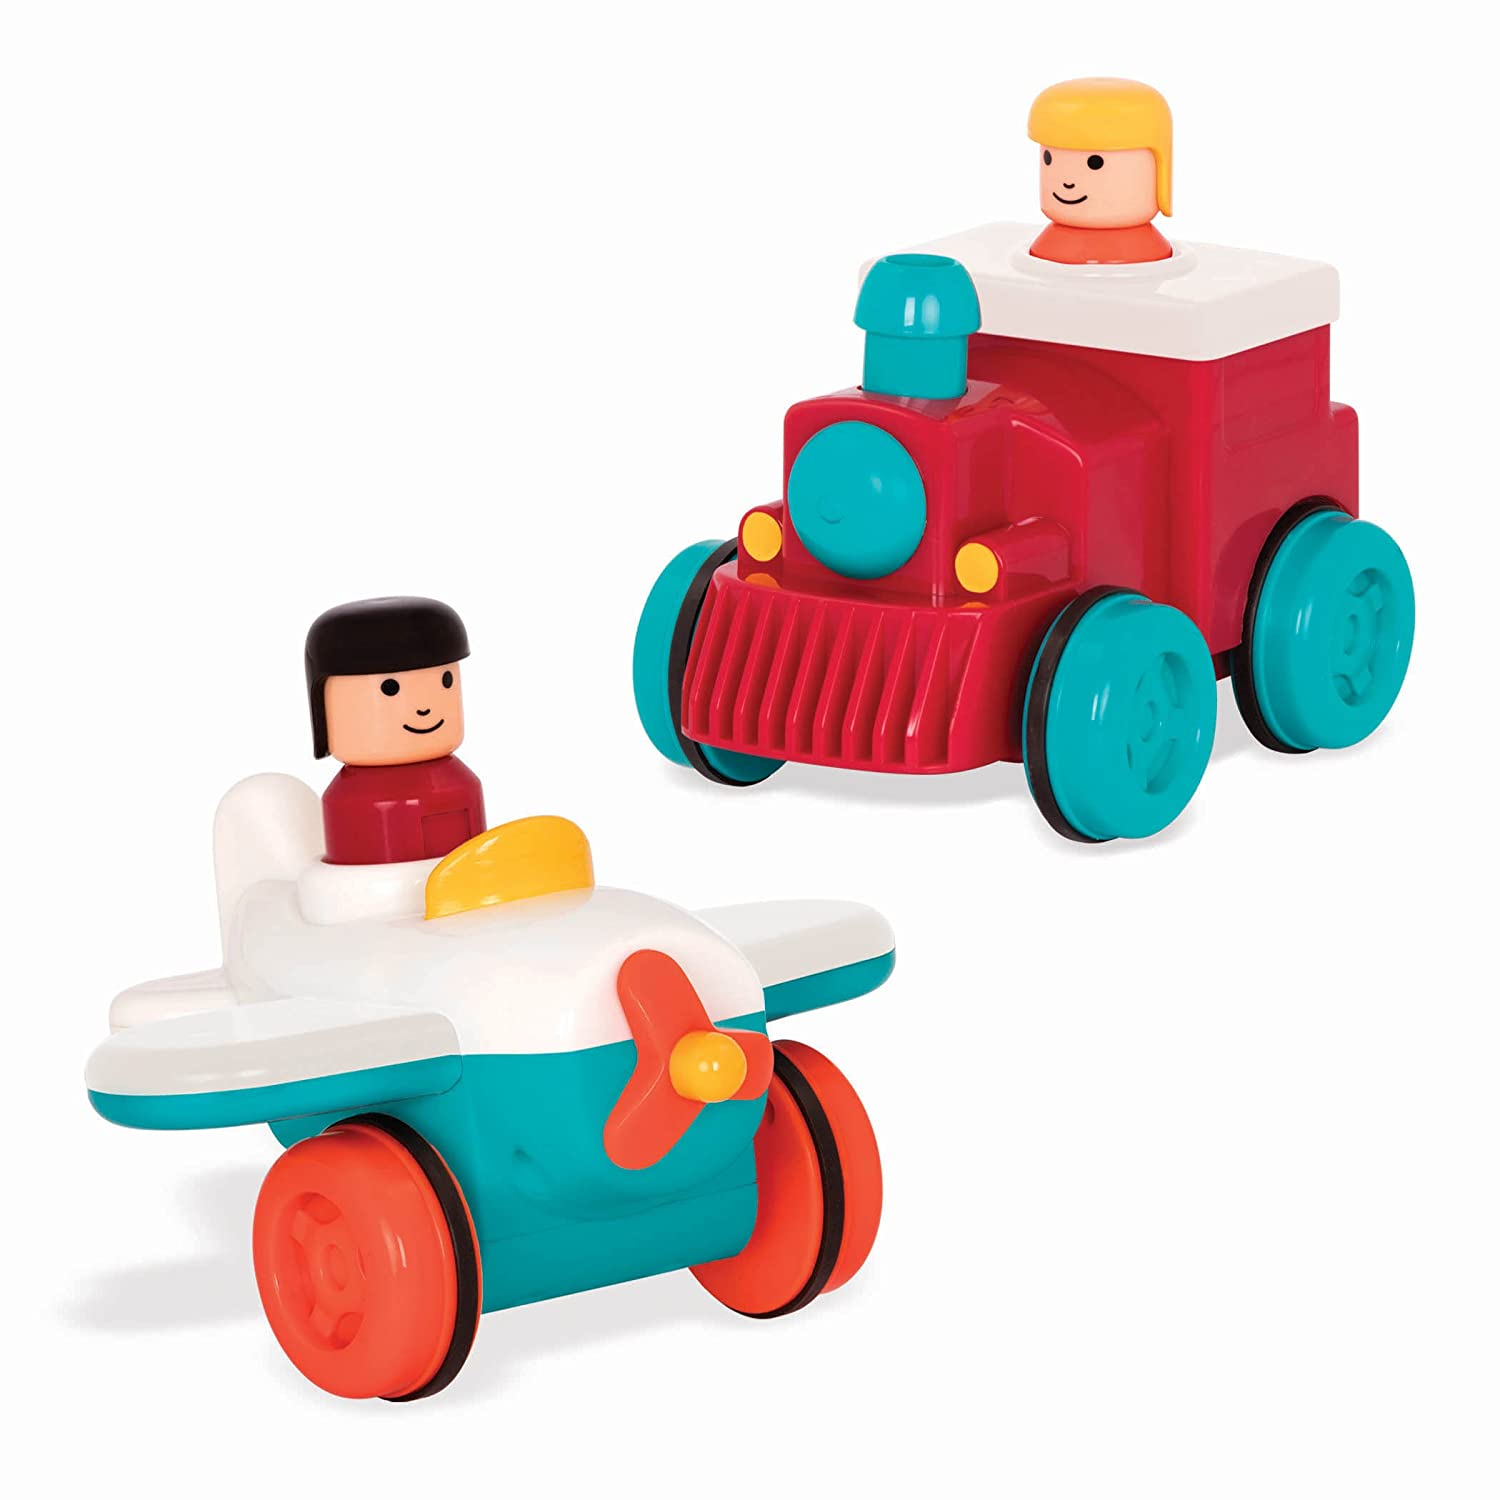 Battat – Pump and Go Plane + Pump and Go Train Combo – 2 Push and Go Vehicles with Pull-Back Action for Kids 18 months+ Branford LTD BT2598Z